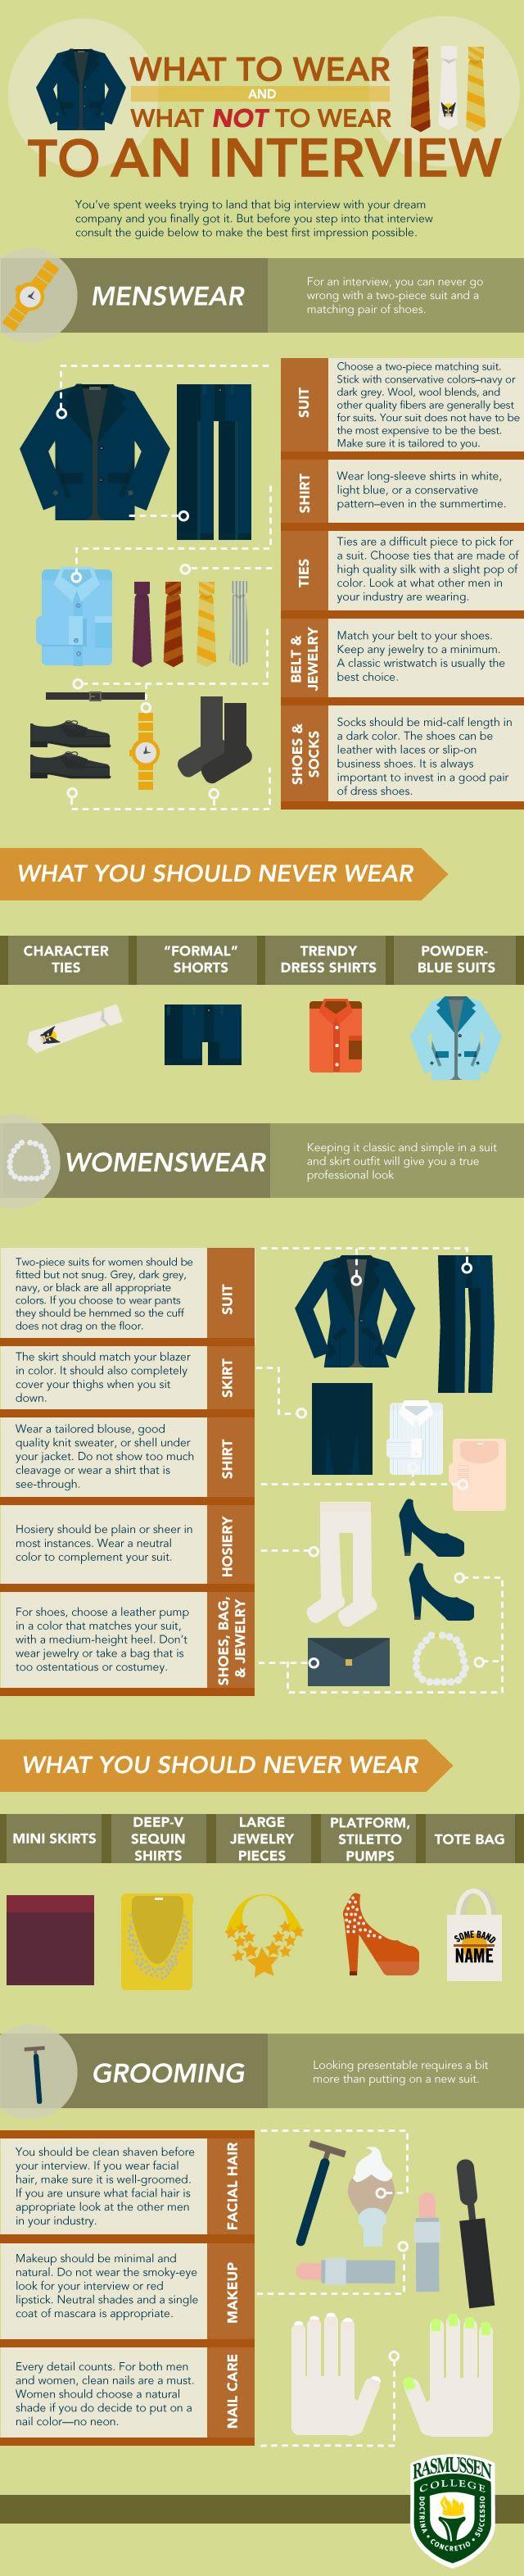 What not to wear to a job interview.